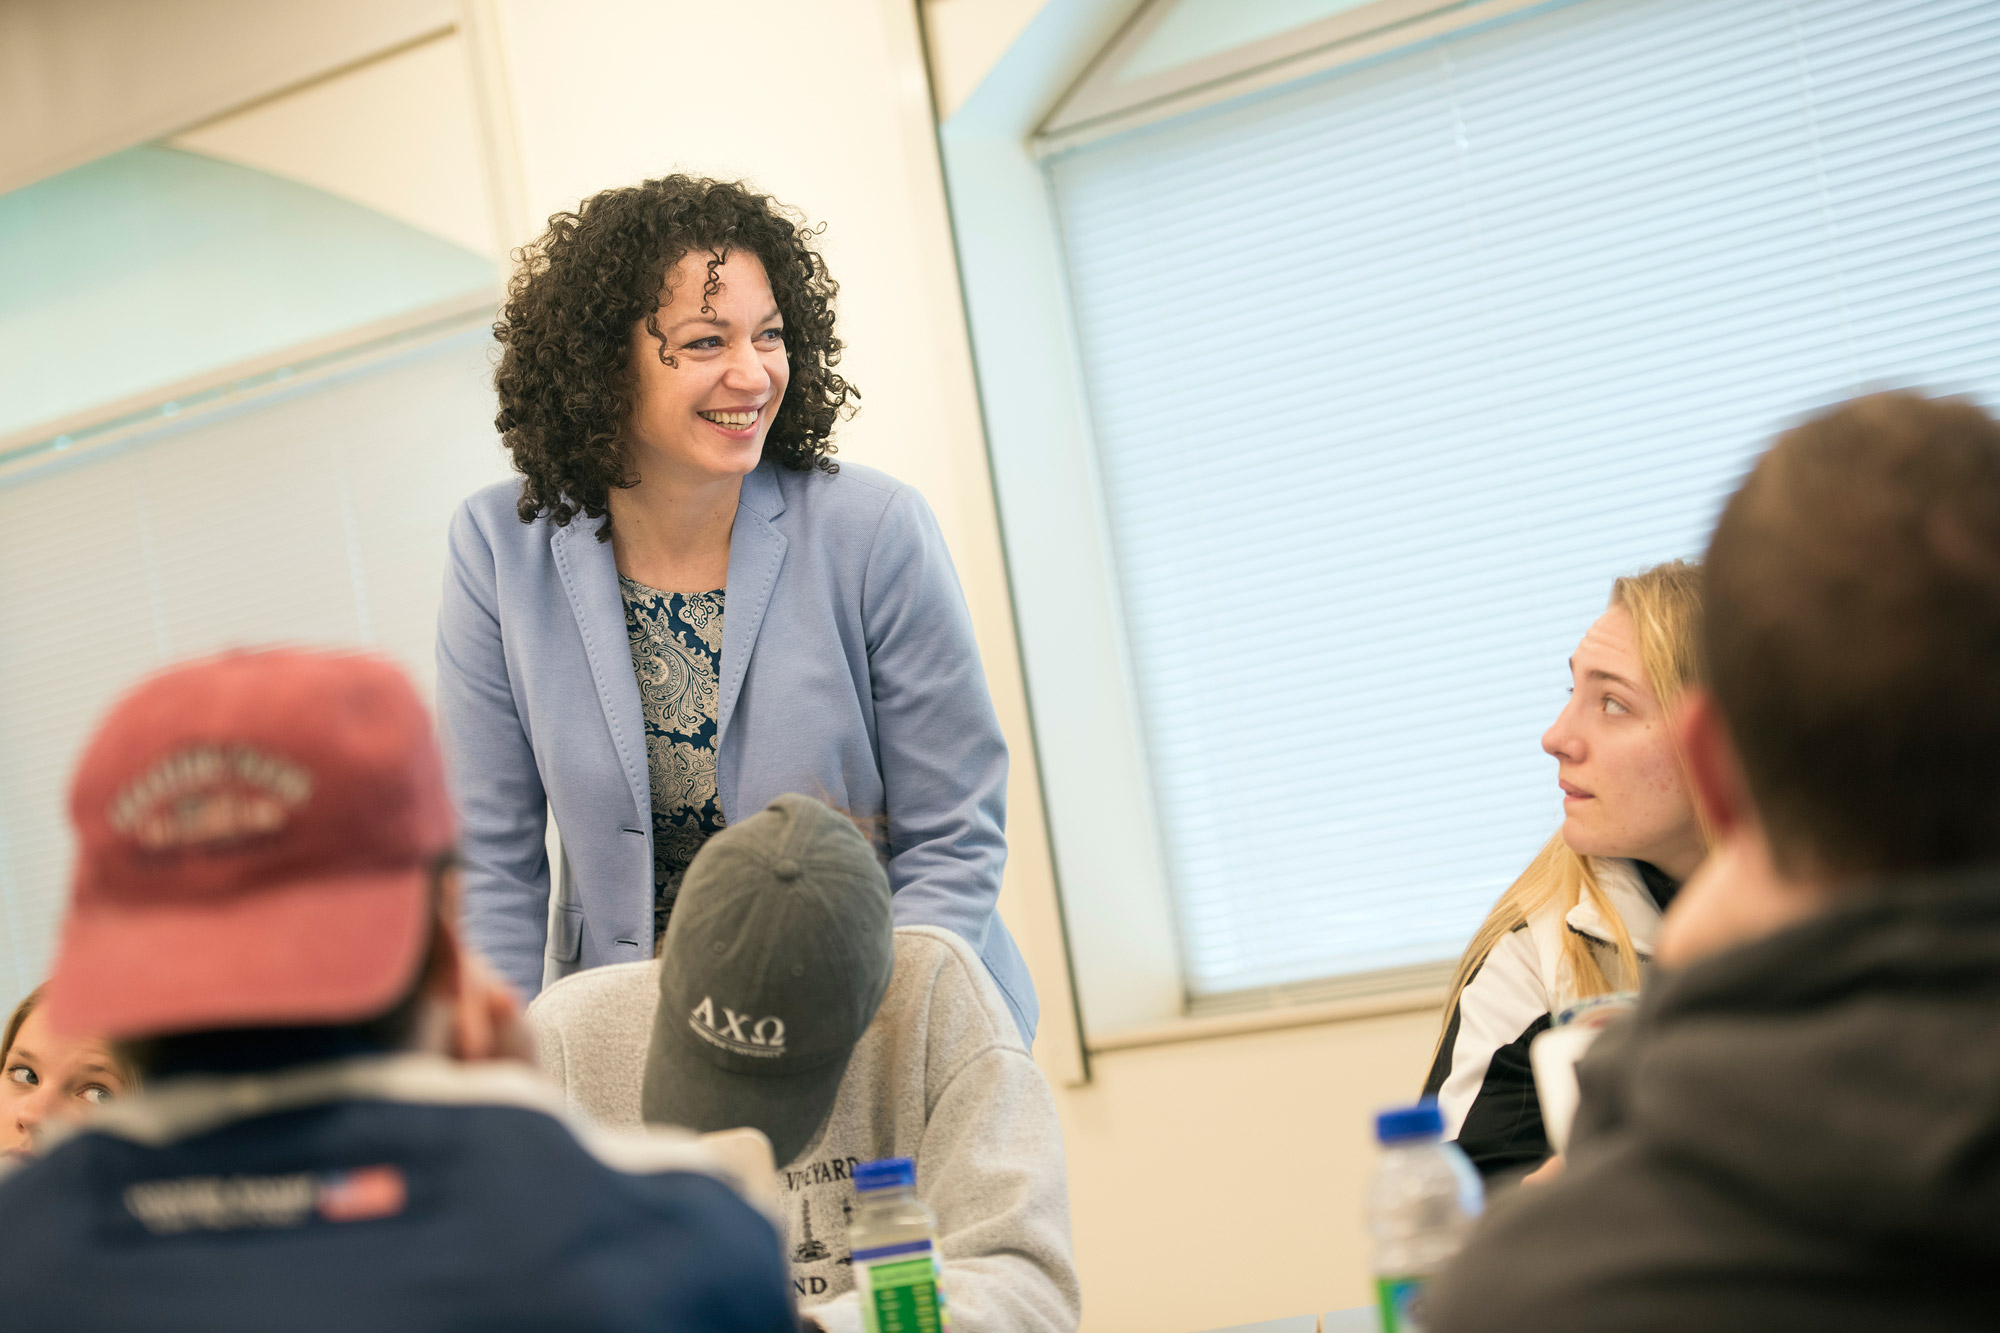 Professor Antoaneta Vanc uses her eclectic global experiences to bring new perspectives to her School of Communications students.